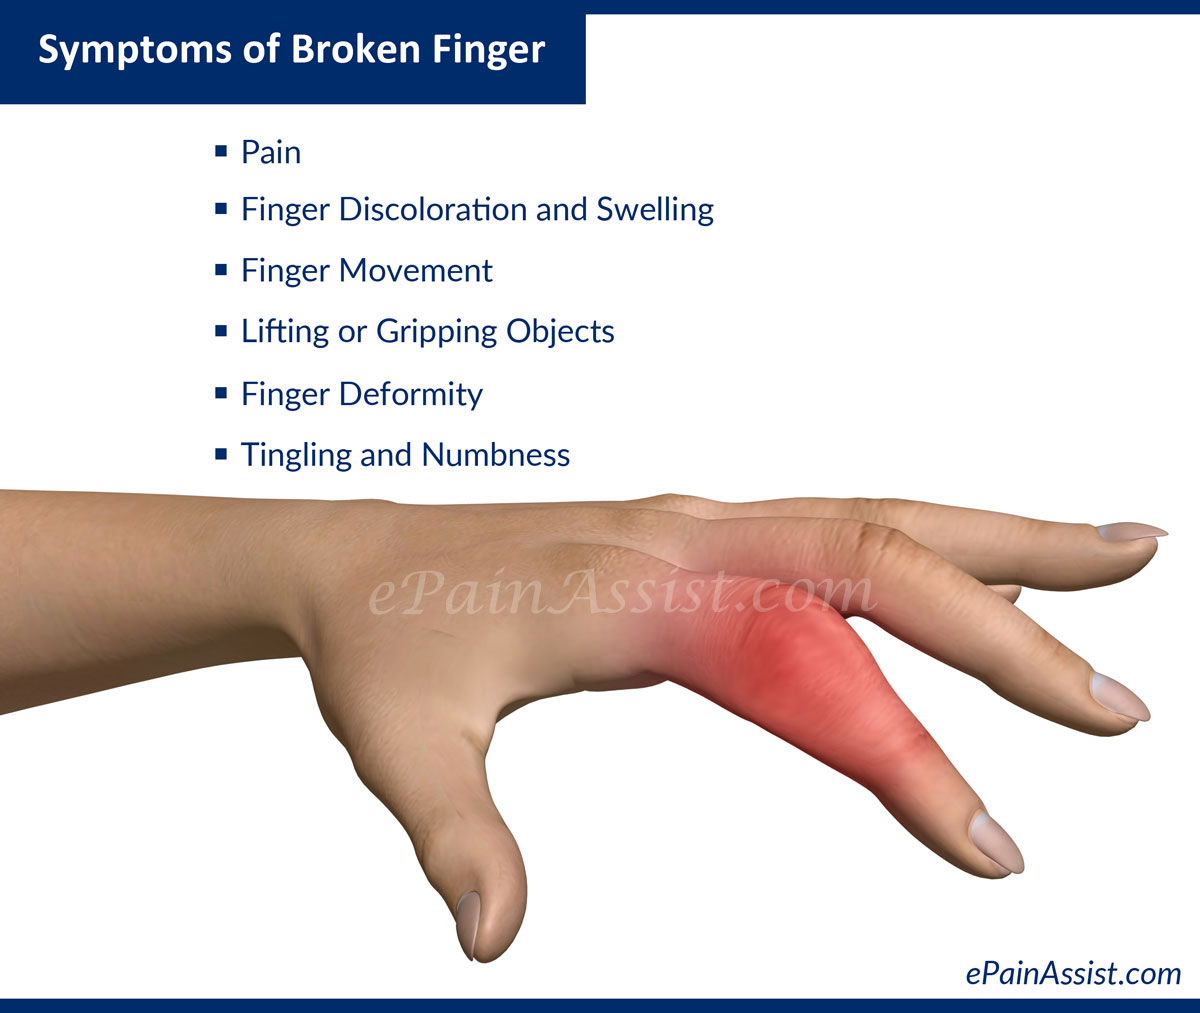 Symptoms of Broken Finger or Fractured Finger